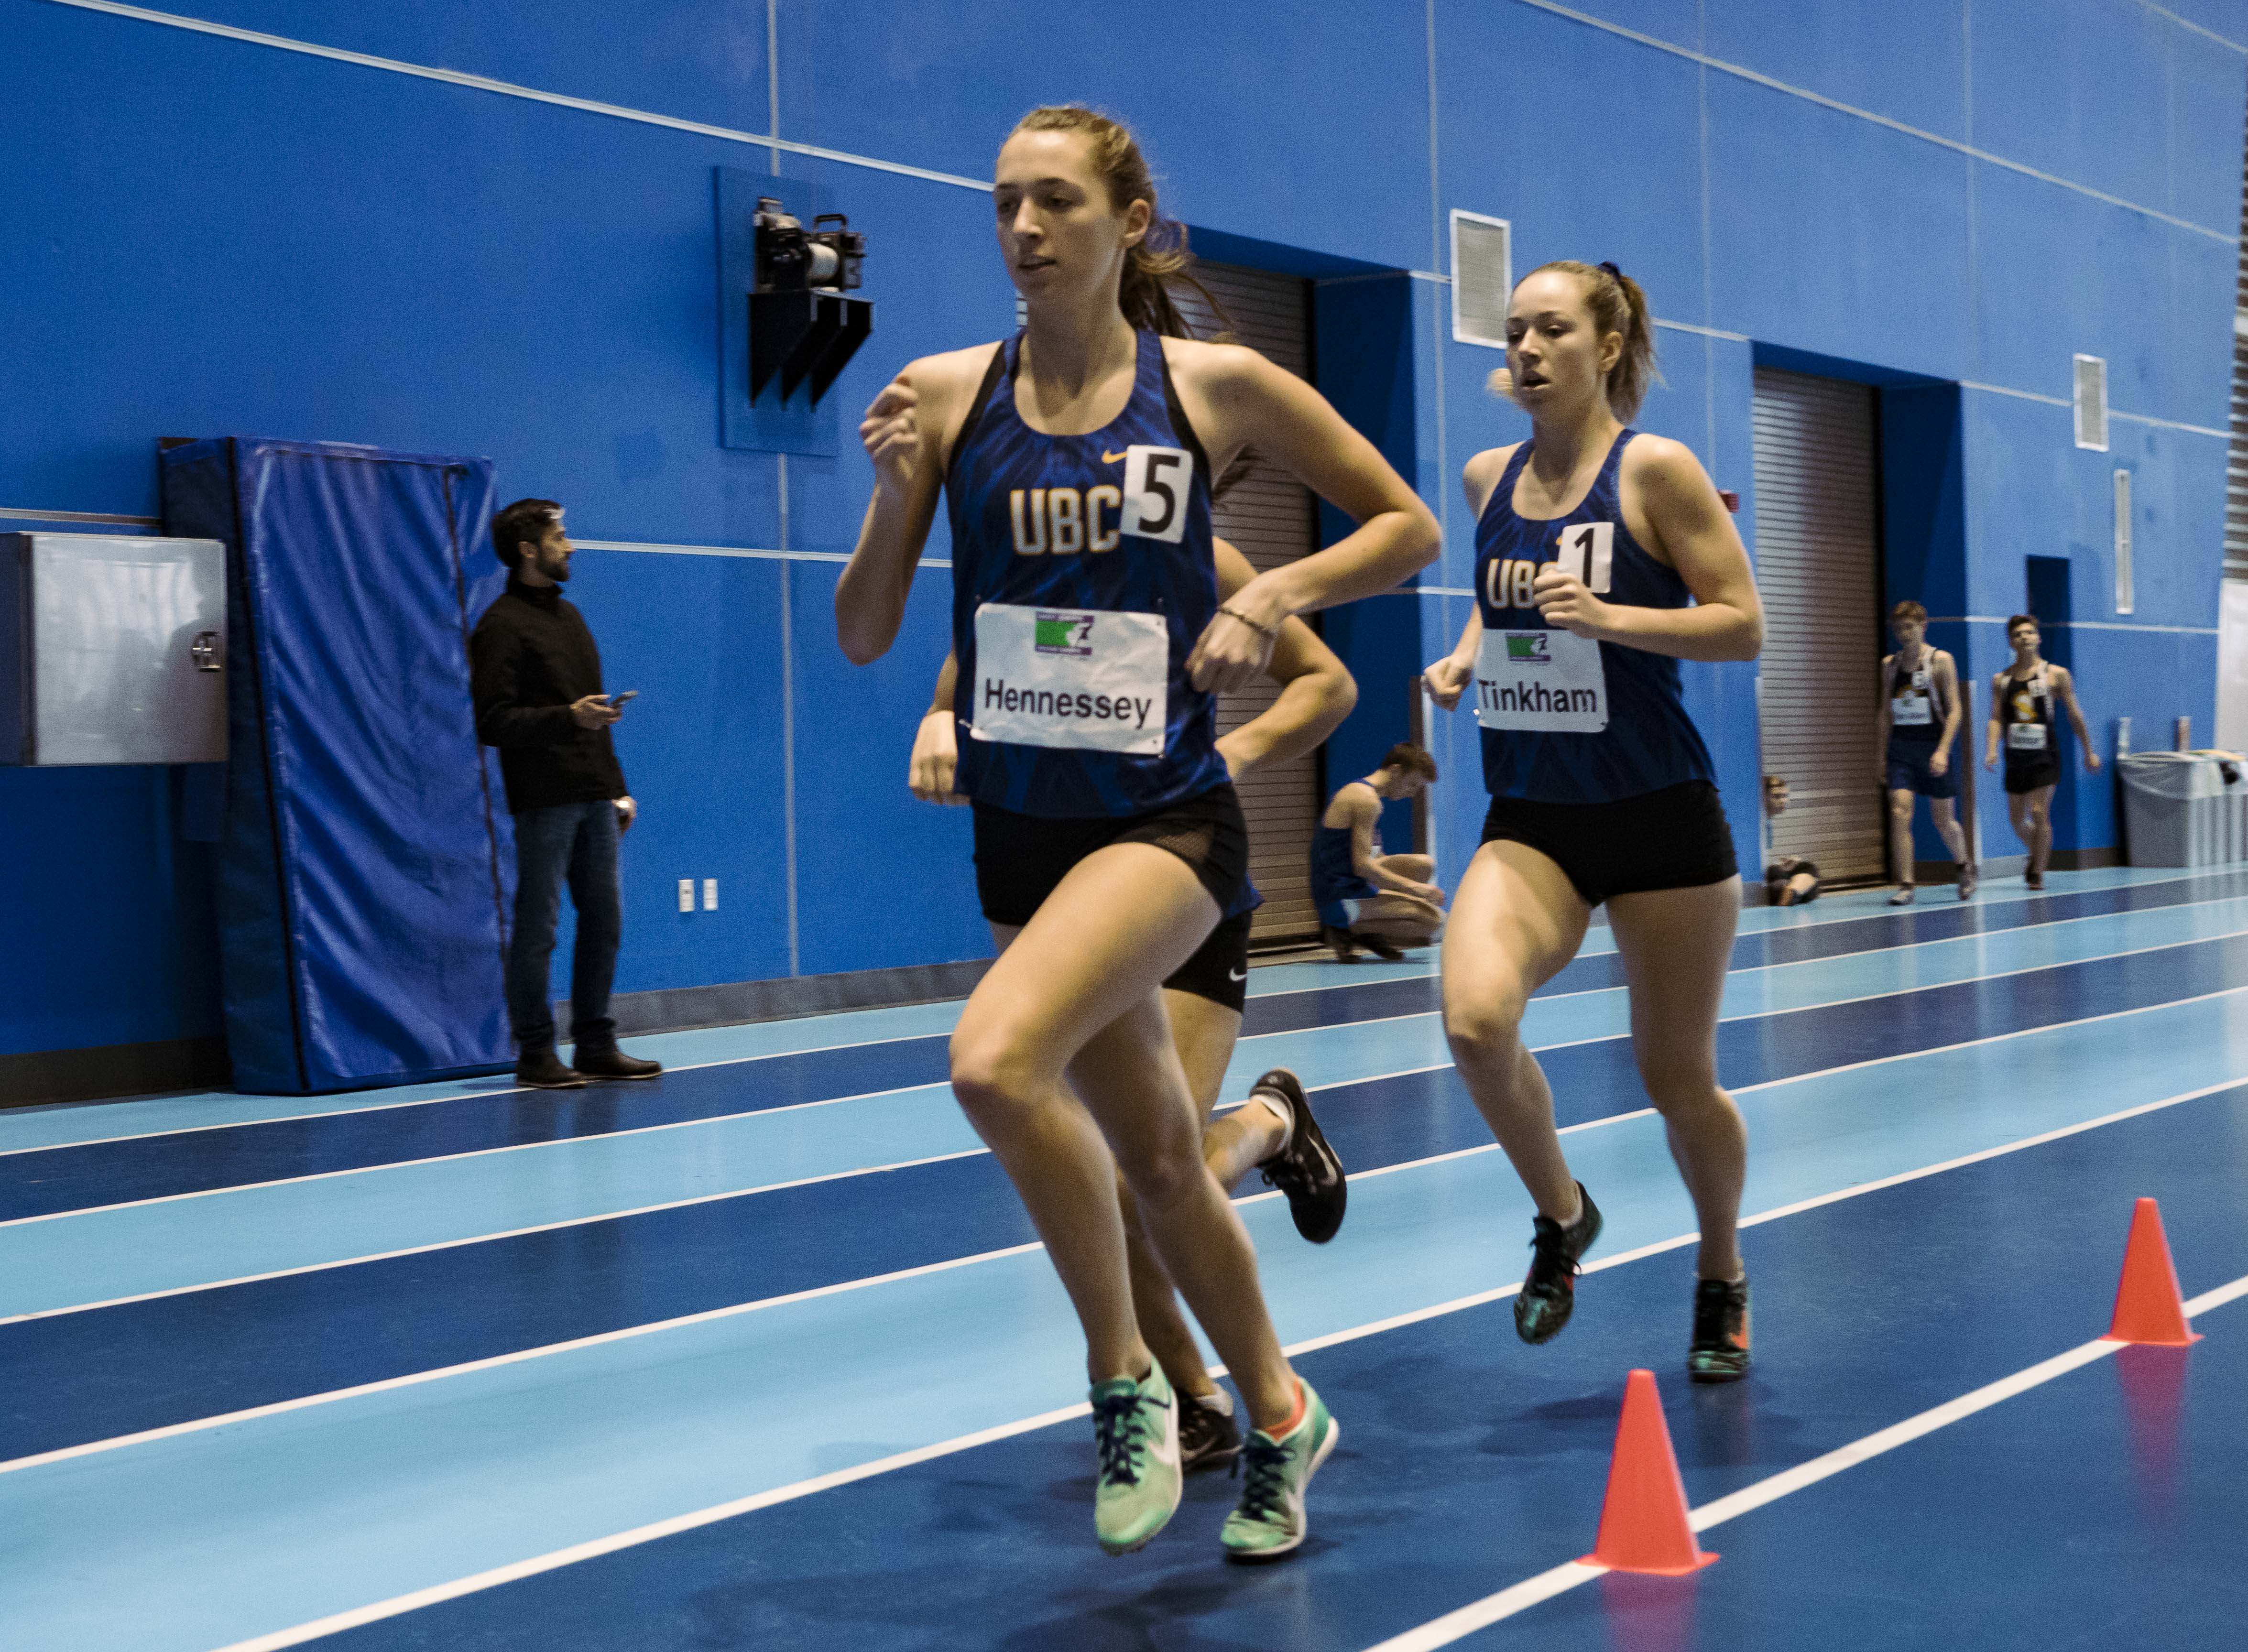 UBC trio Jamie Hennessey, Mikayla Tinkham and Madelyn Huston break away from the pack in the 1,500 metre race.